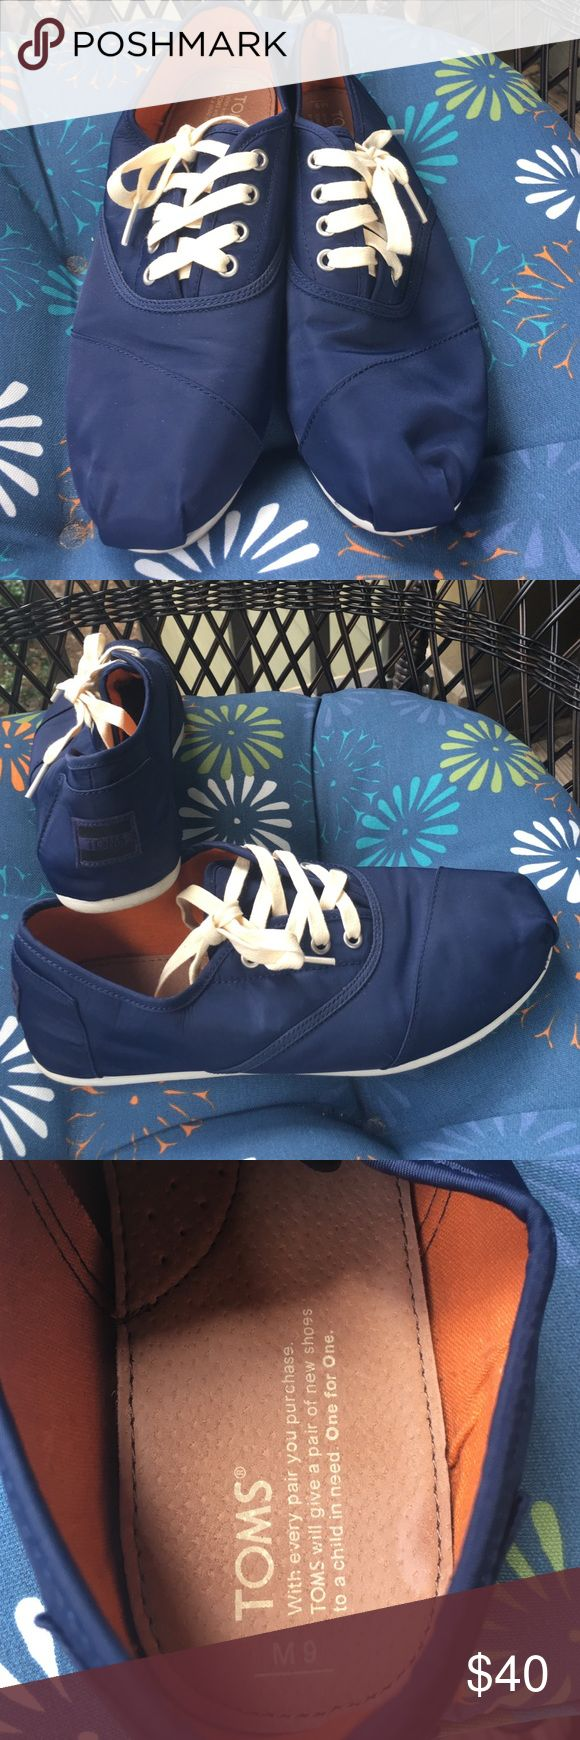 Men's Waterproof Toms Lace-Up Shoes Blue nylon Toms that are waterproof. Excellent for those rainy days. Very Comfortable. Worn twice. Like new condition. Toms Shoes Sneakers